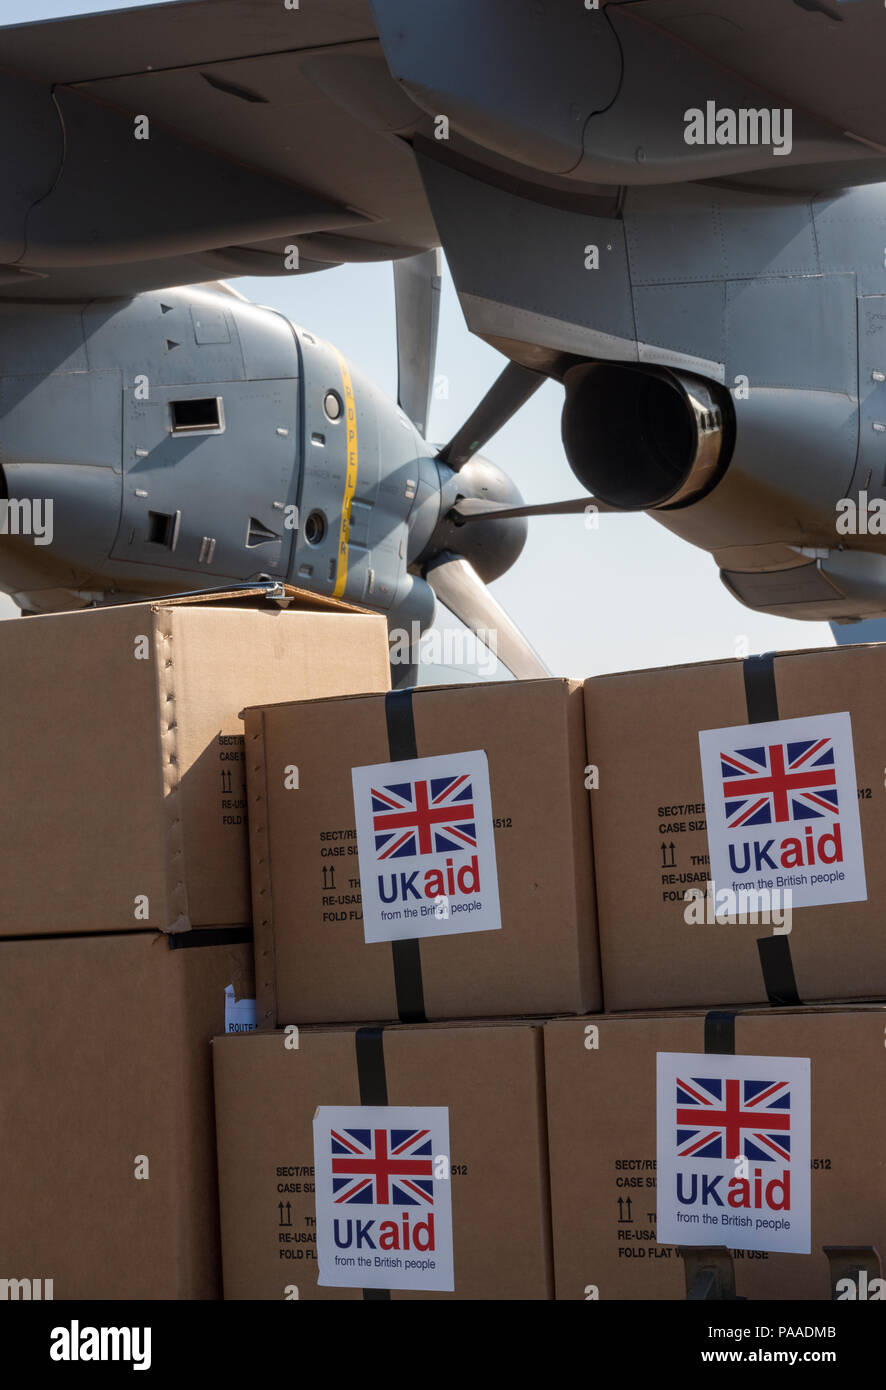 boxes of UK foreign aid packages waiting to be loaded onto a relief aircraft. UK foreign aid. - Stock Image